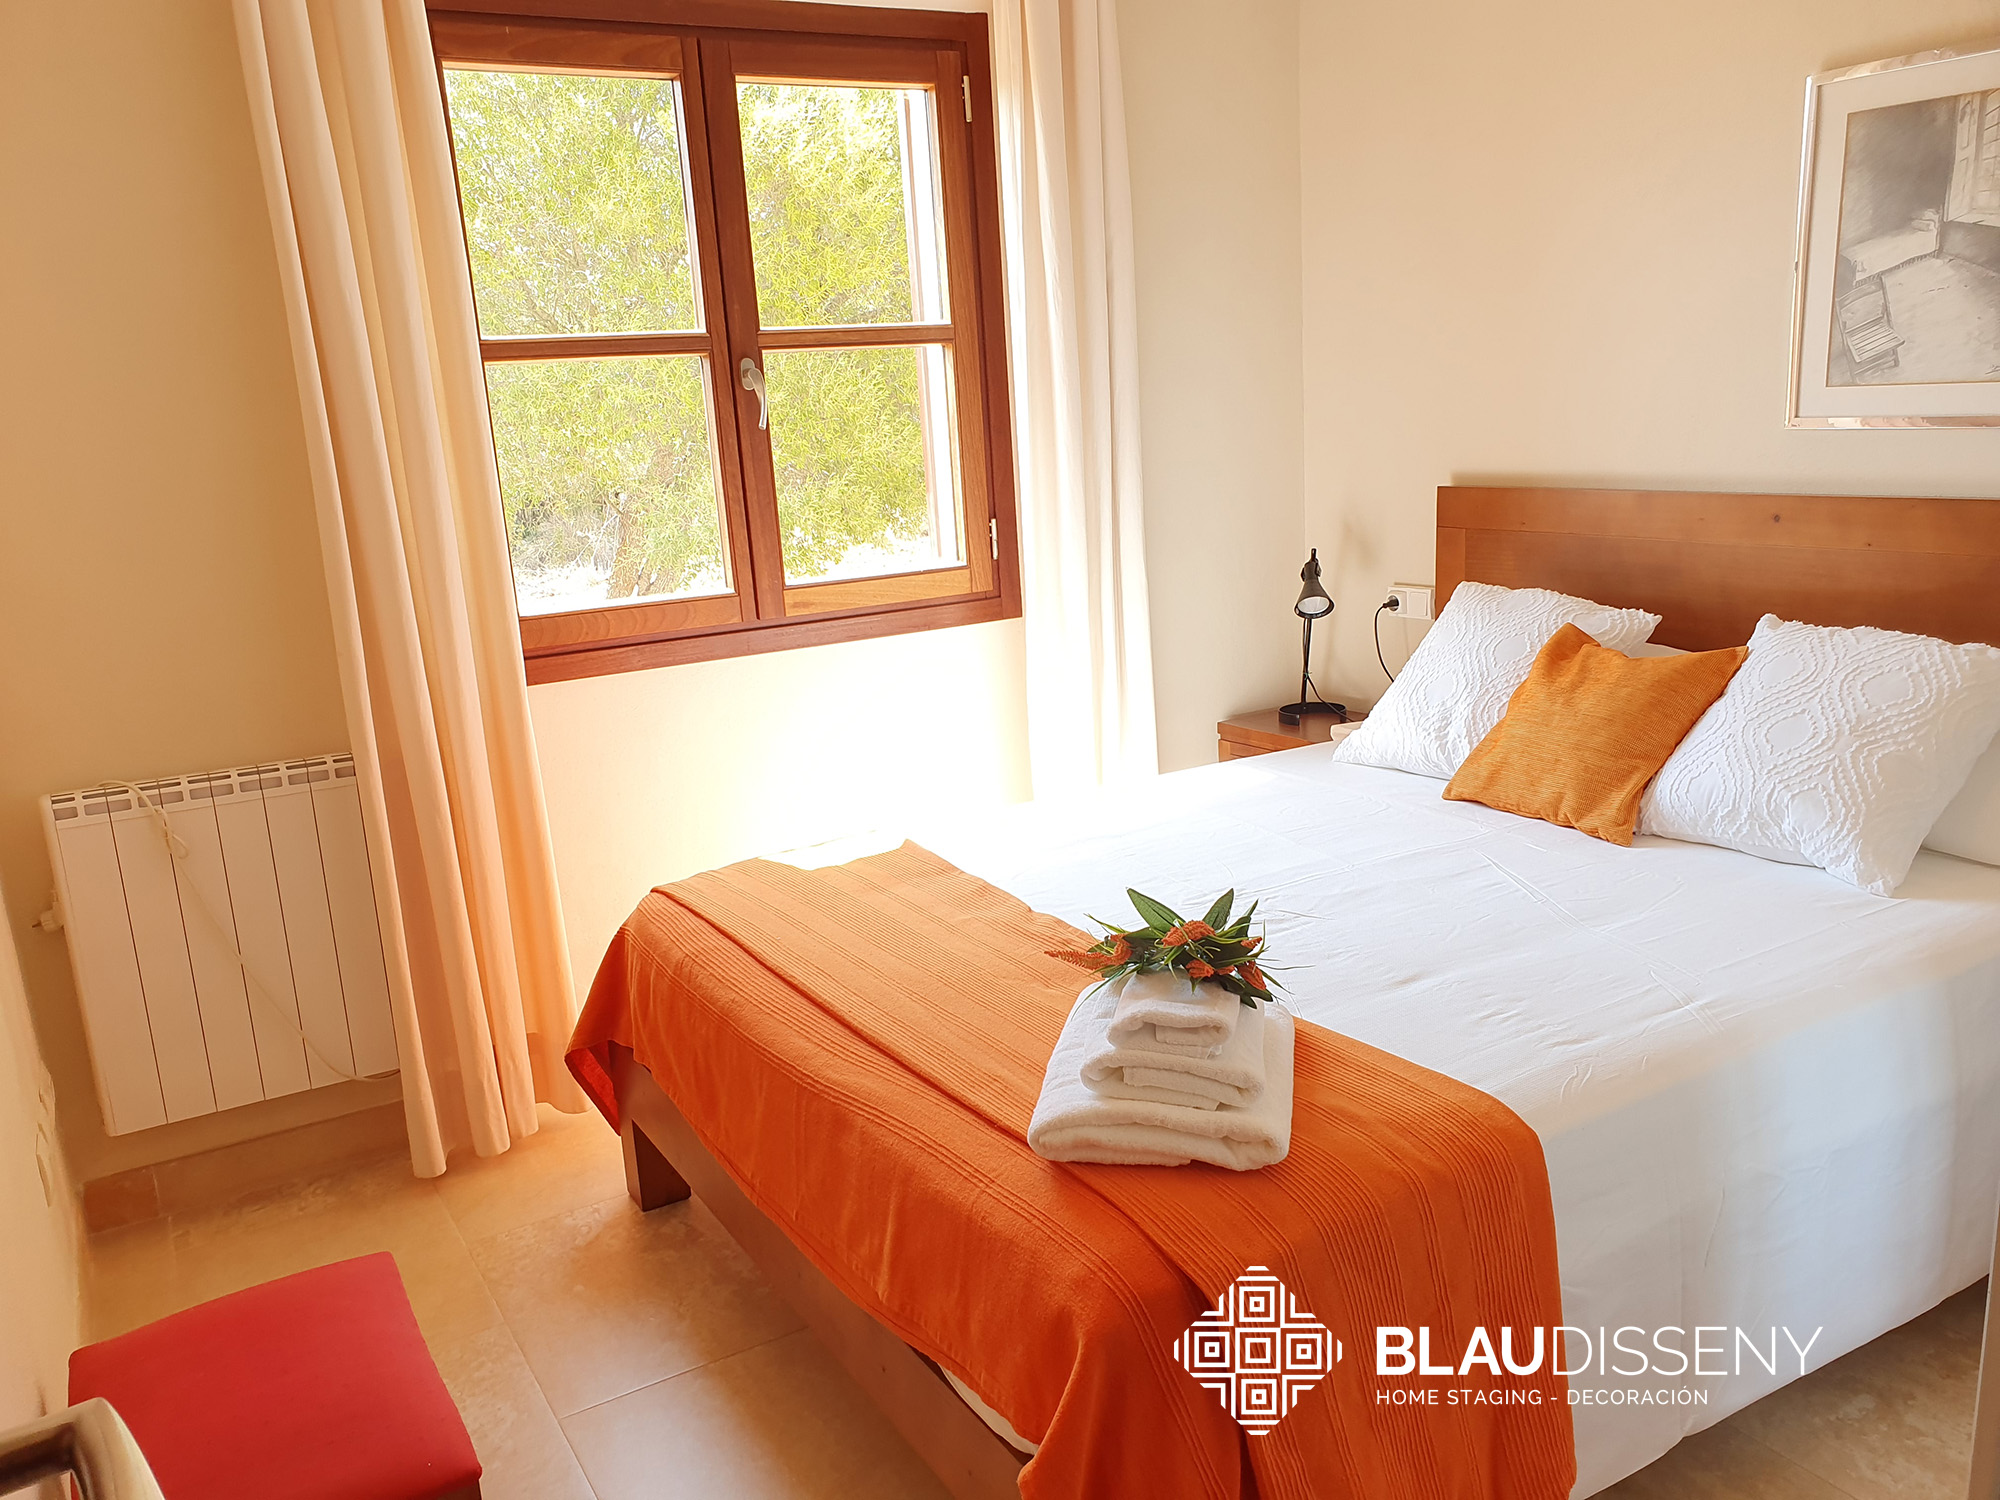 Blaudisseny-home-staging-ses-salines-habitacion-doble-1-despues-logo